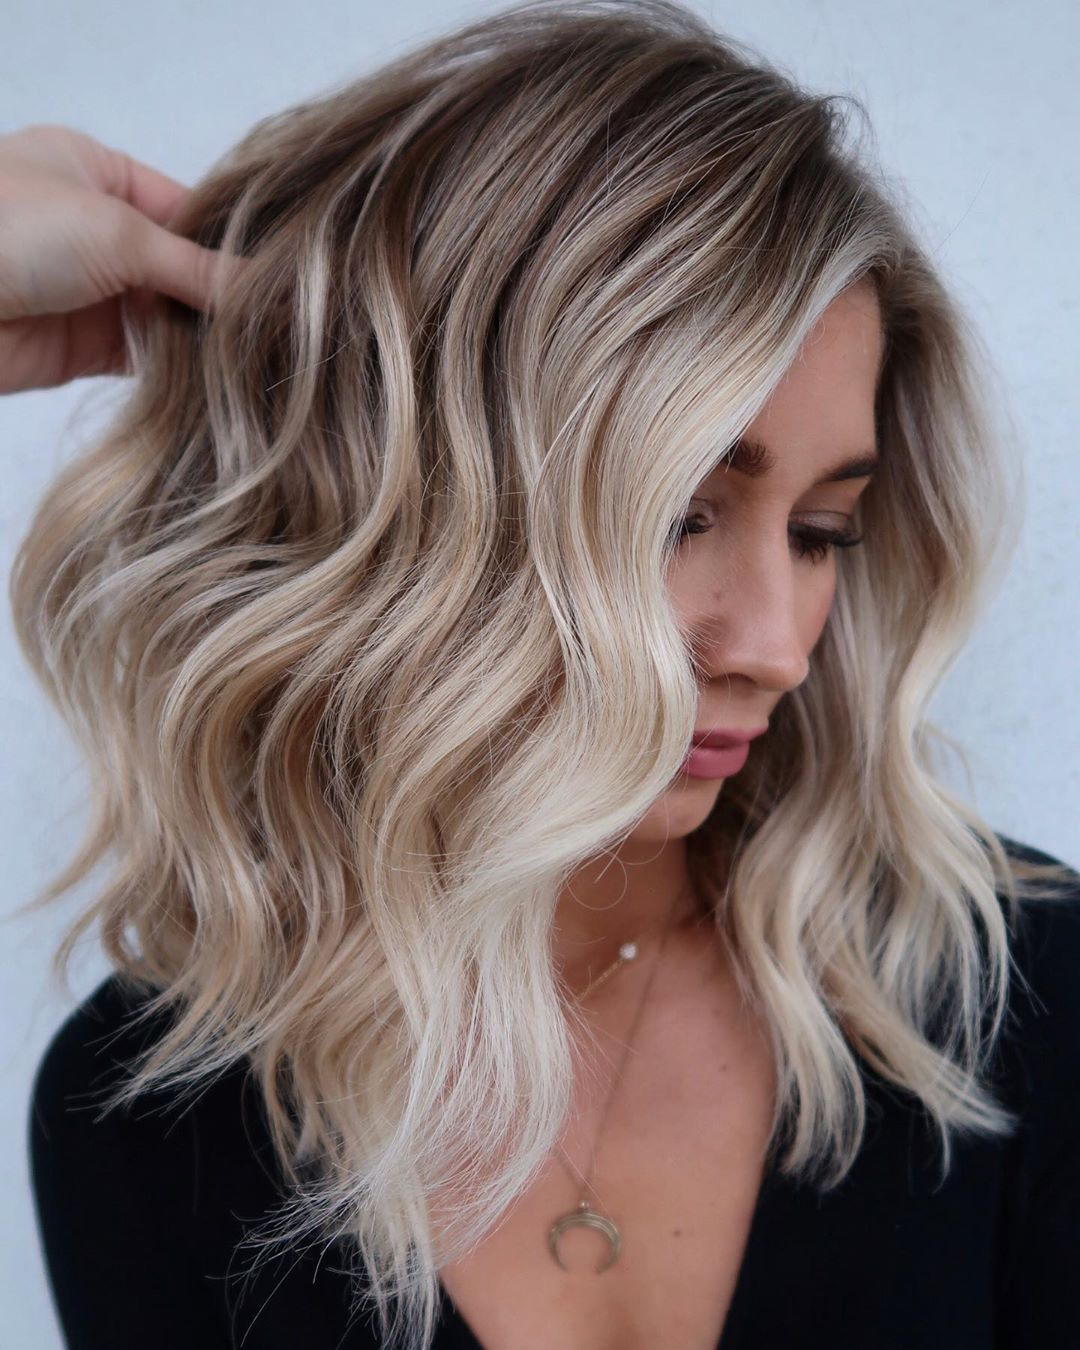 50 Best Blonde Highlights Ideas For A Chic Makeover In 2020 Hair Adviser